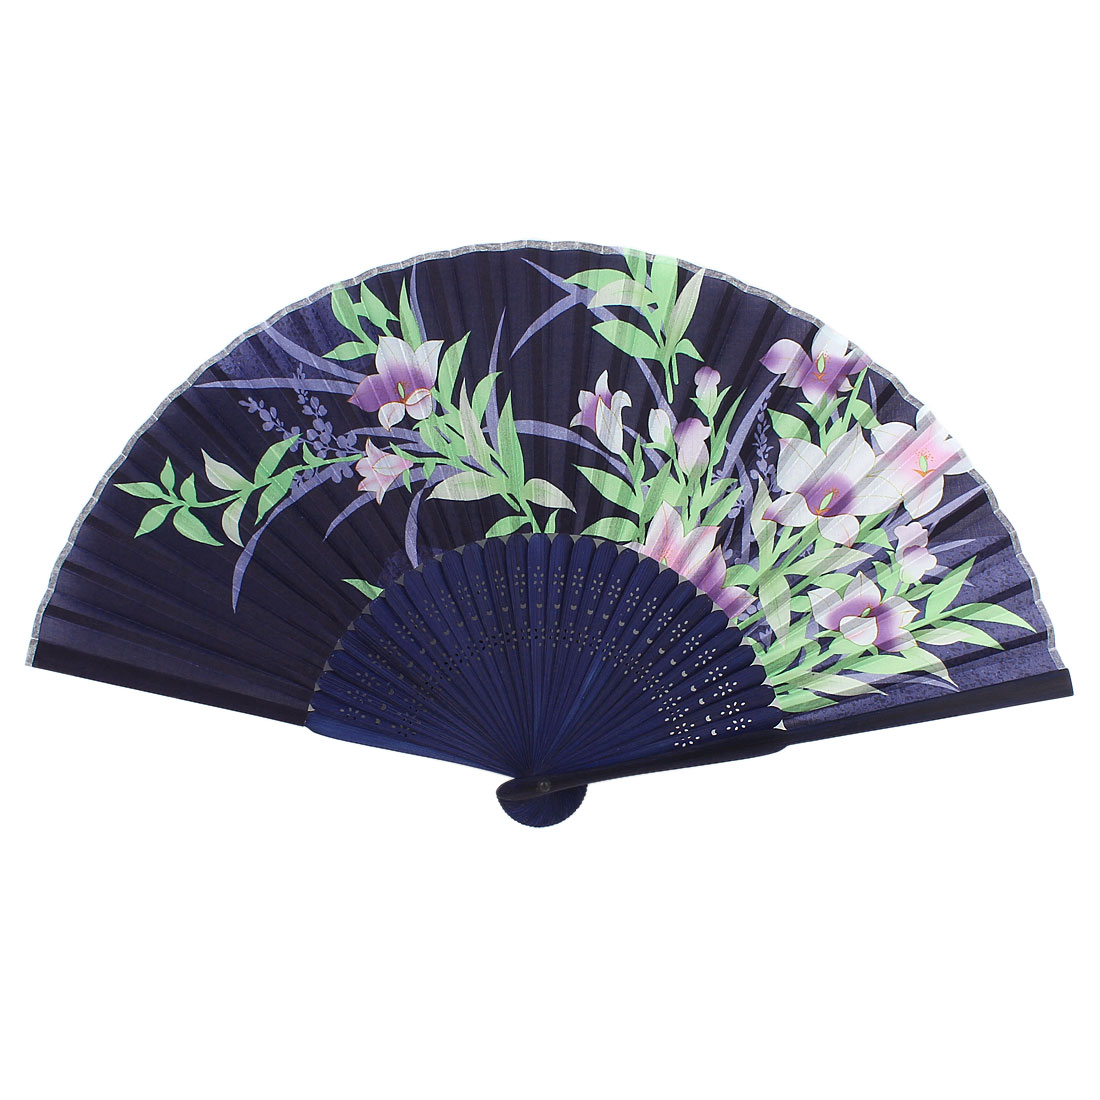 Bamboo Ribs Flowers Leaves Print Fabric Foldable Craft Hand Fan Blue Purple